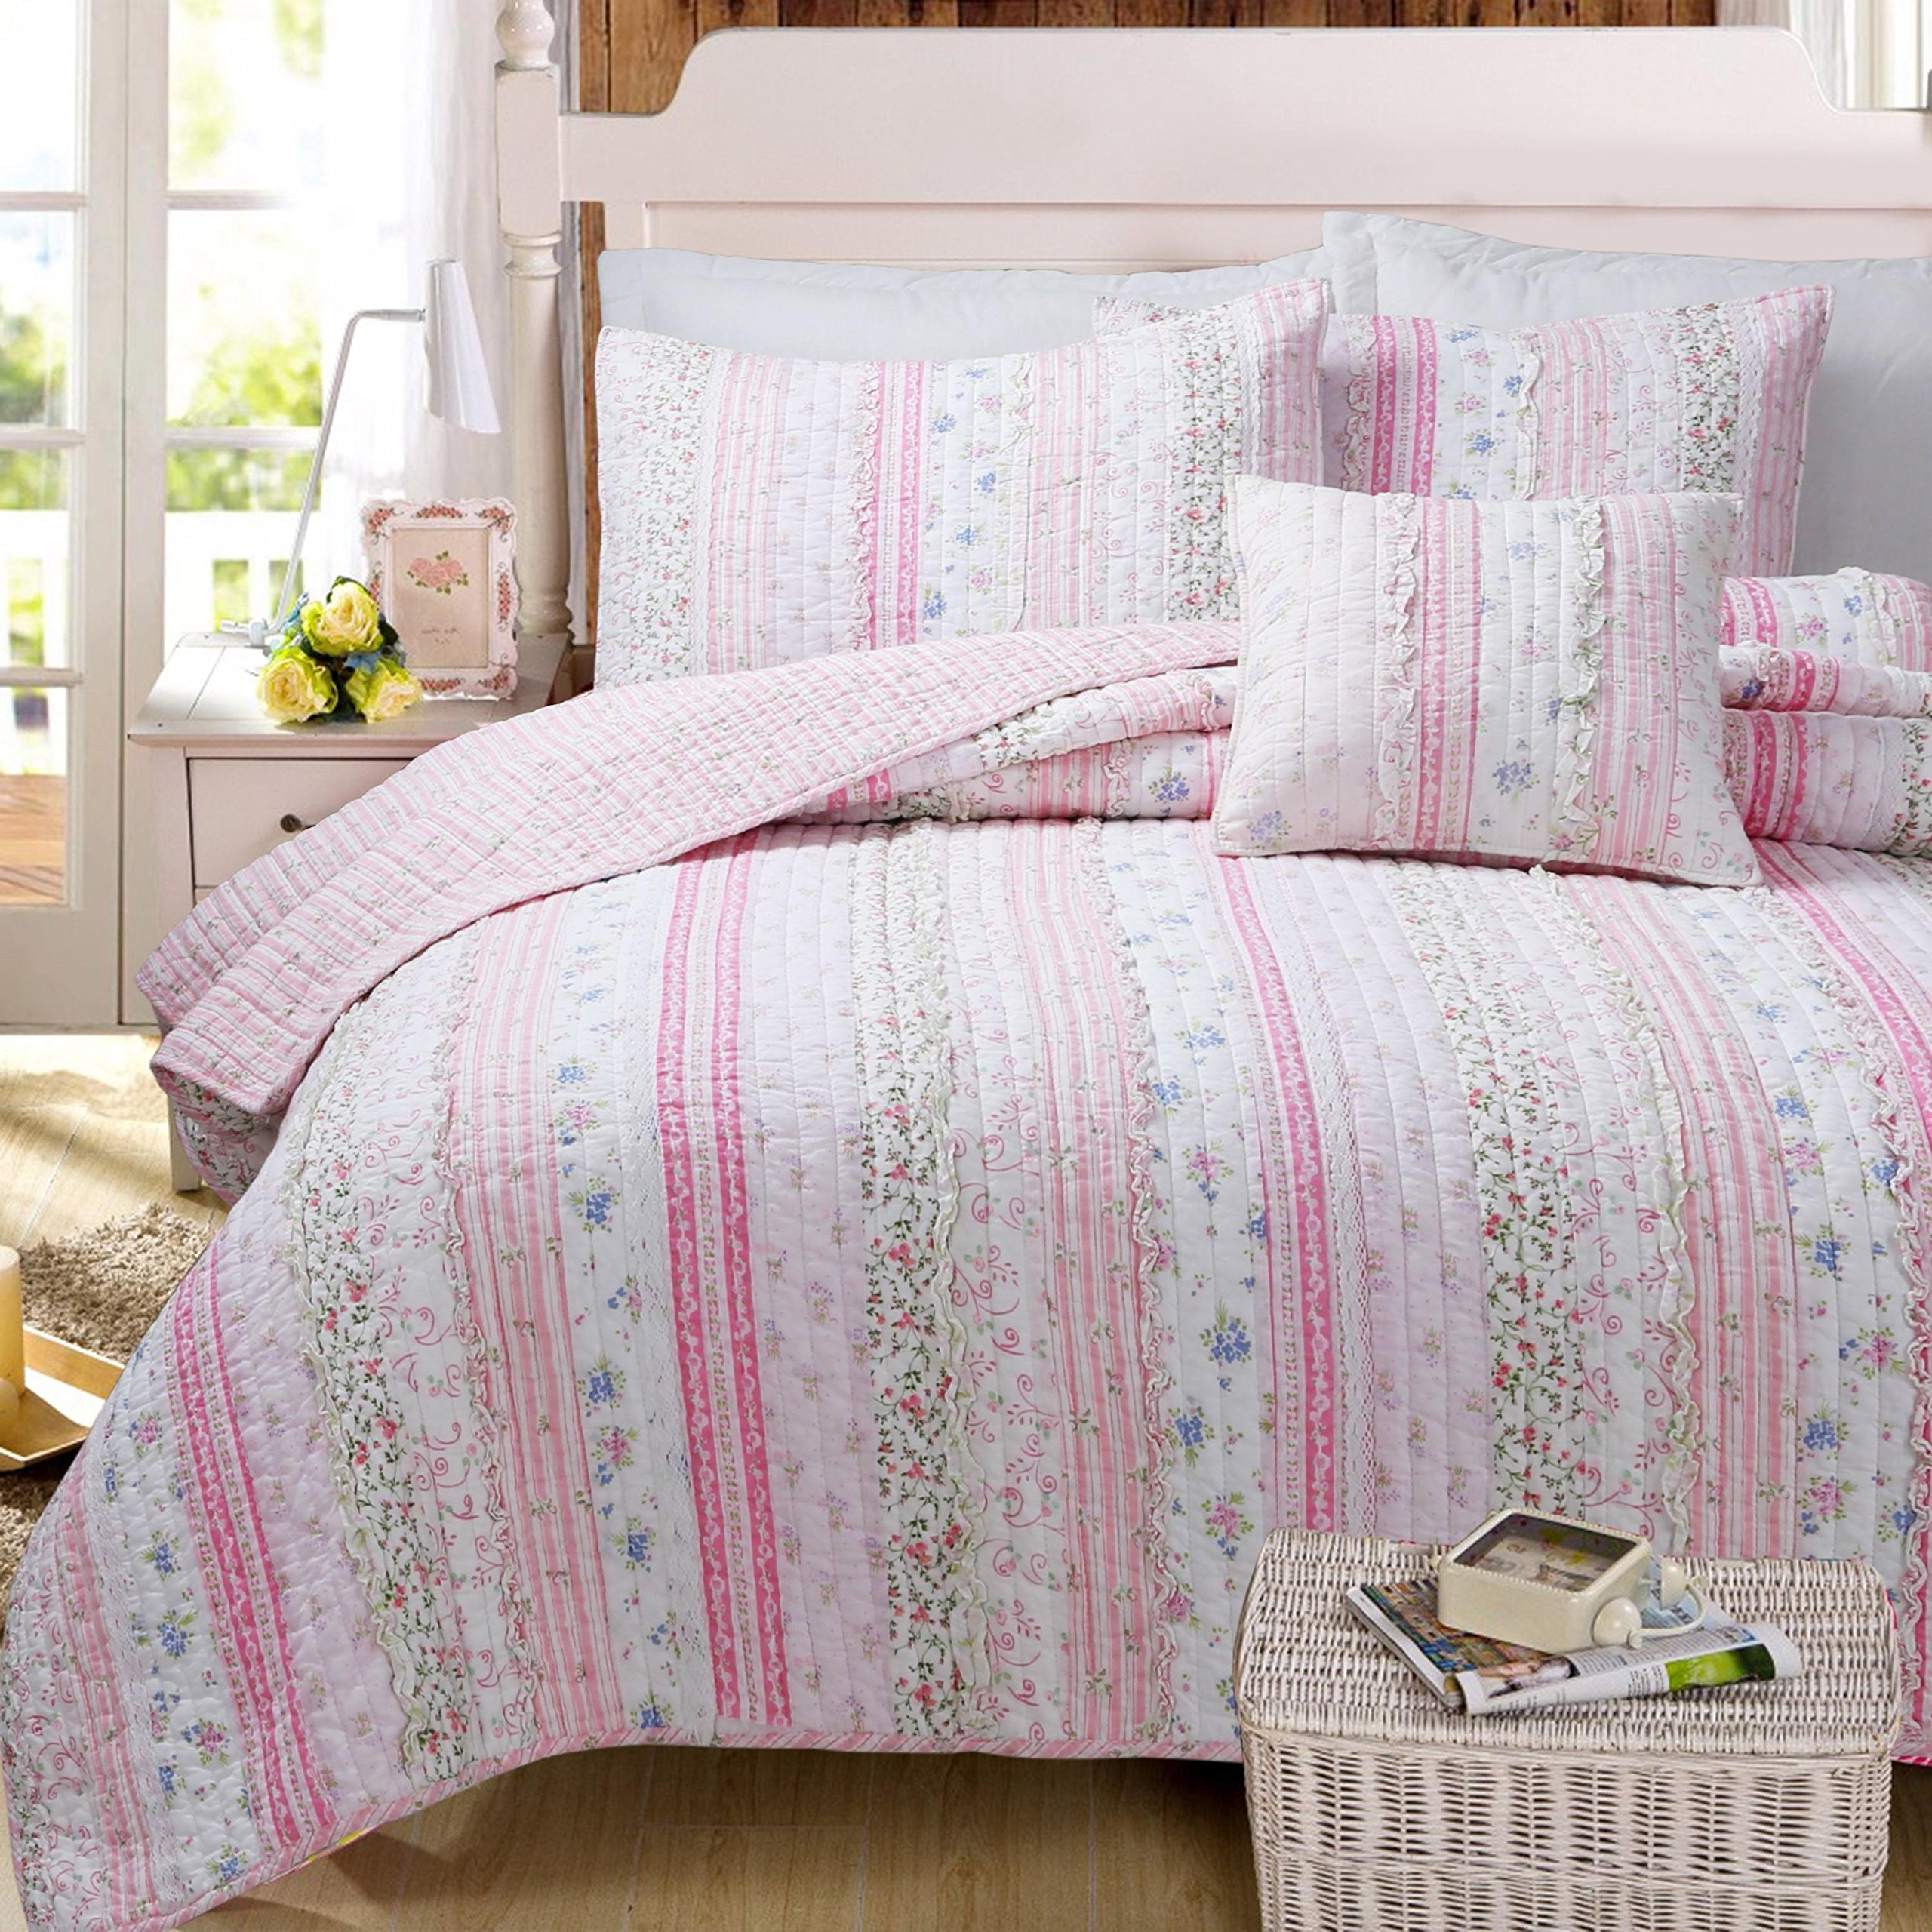 3 Piece Girls Pink Floral Stripes Pattern Quilt Queen Set, Beutiful Romantic Garden Flowers Striped Print, Bohemian Vintage Patchwork Textured Design Reversible Bedding, Splash Bright Colors, Cotton